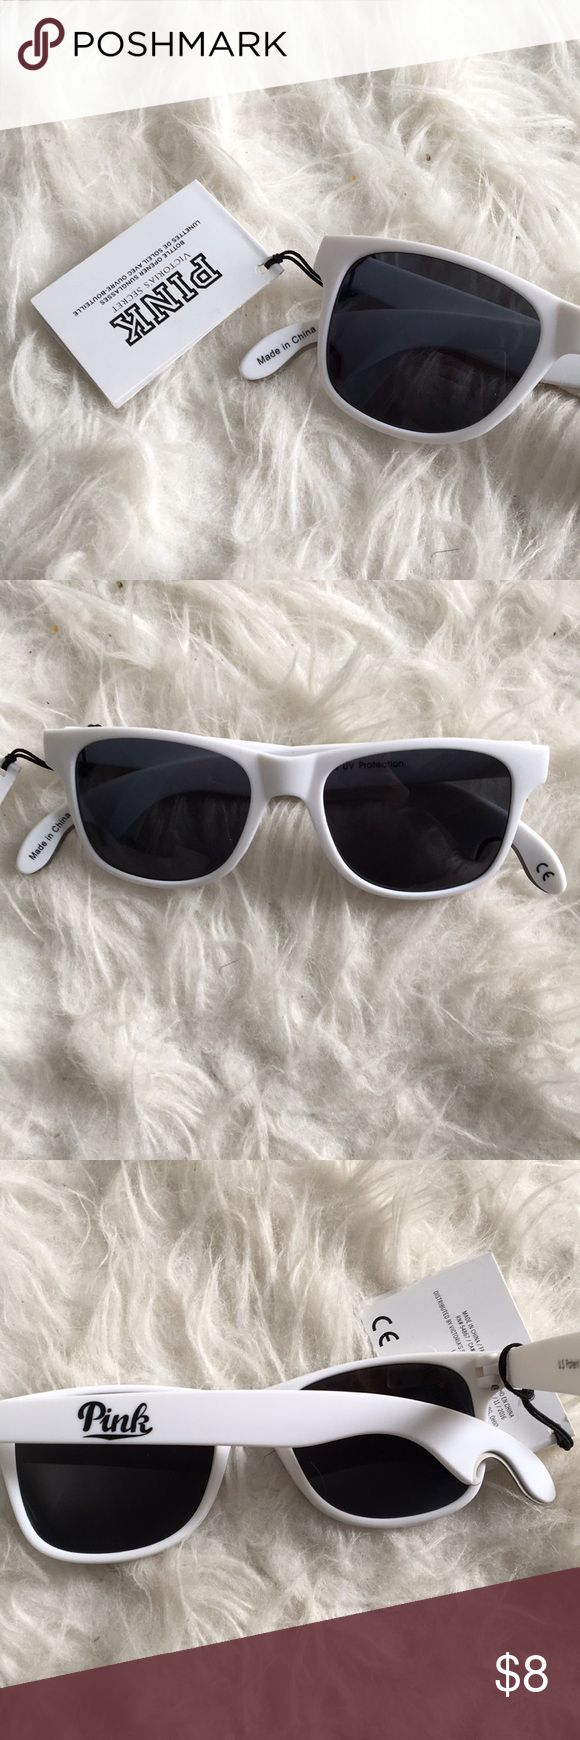 PINK White Ray Ban Style Sunglasses Never worn before, in perfect condition! Has bottle openers on the ends, great for summer parties! PINK Accessories Glasses